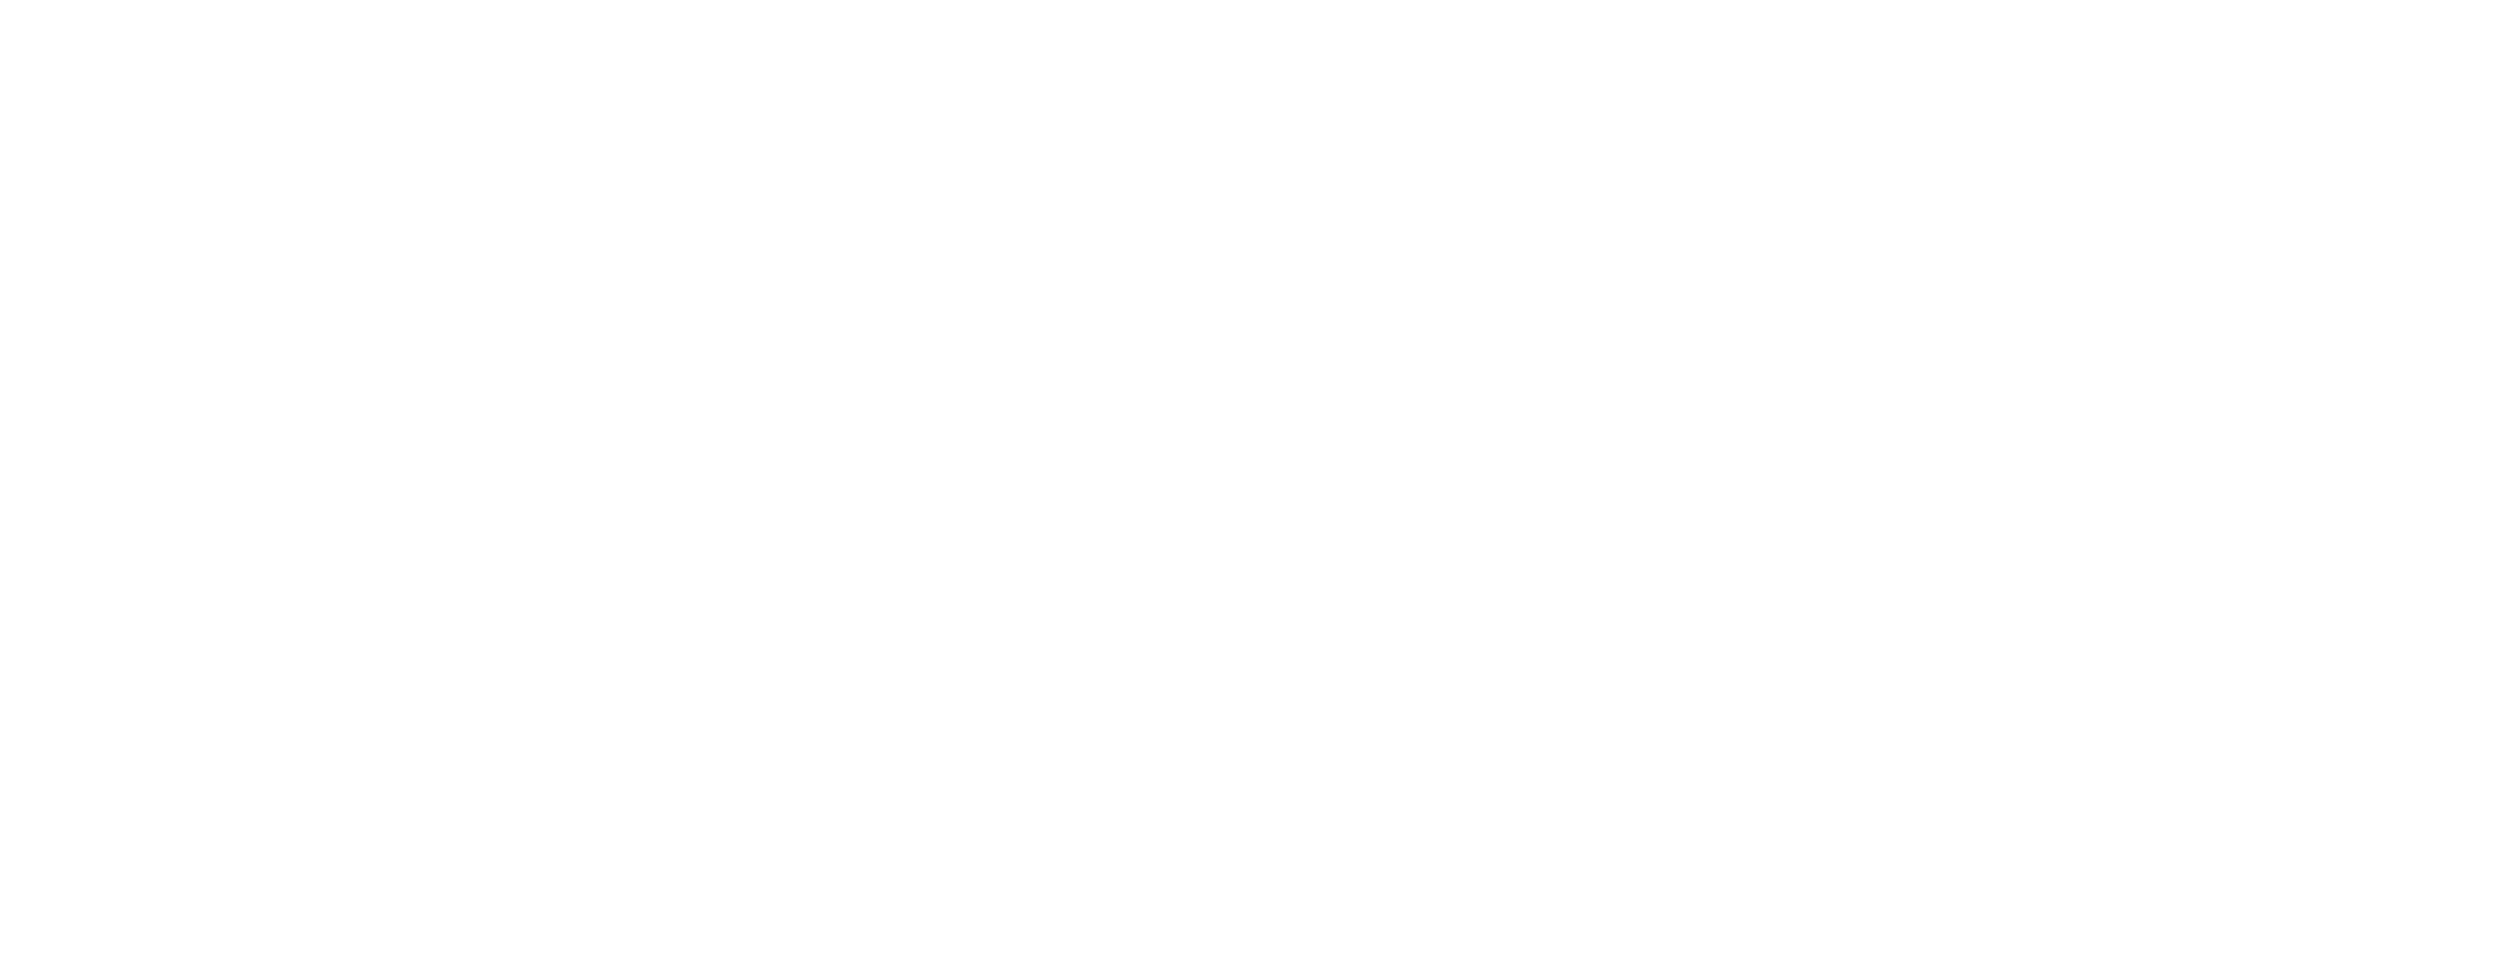 ColorWord Creative, Inc.